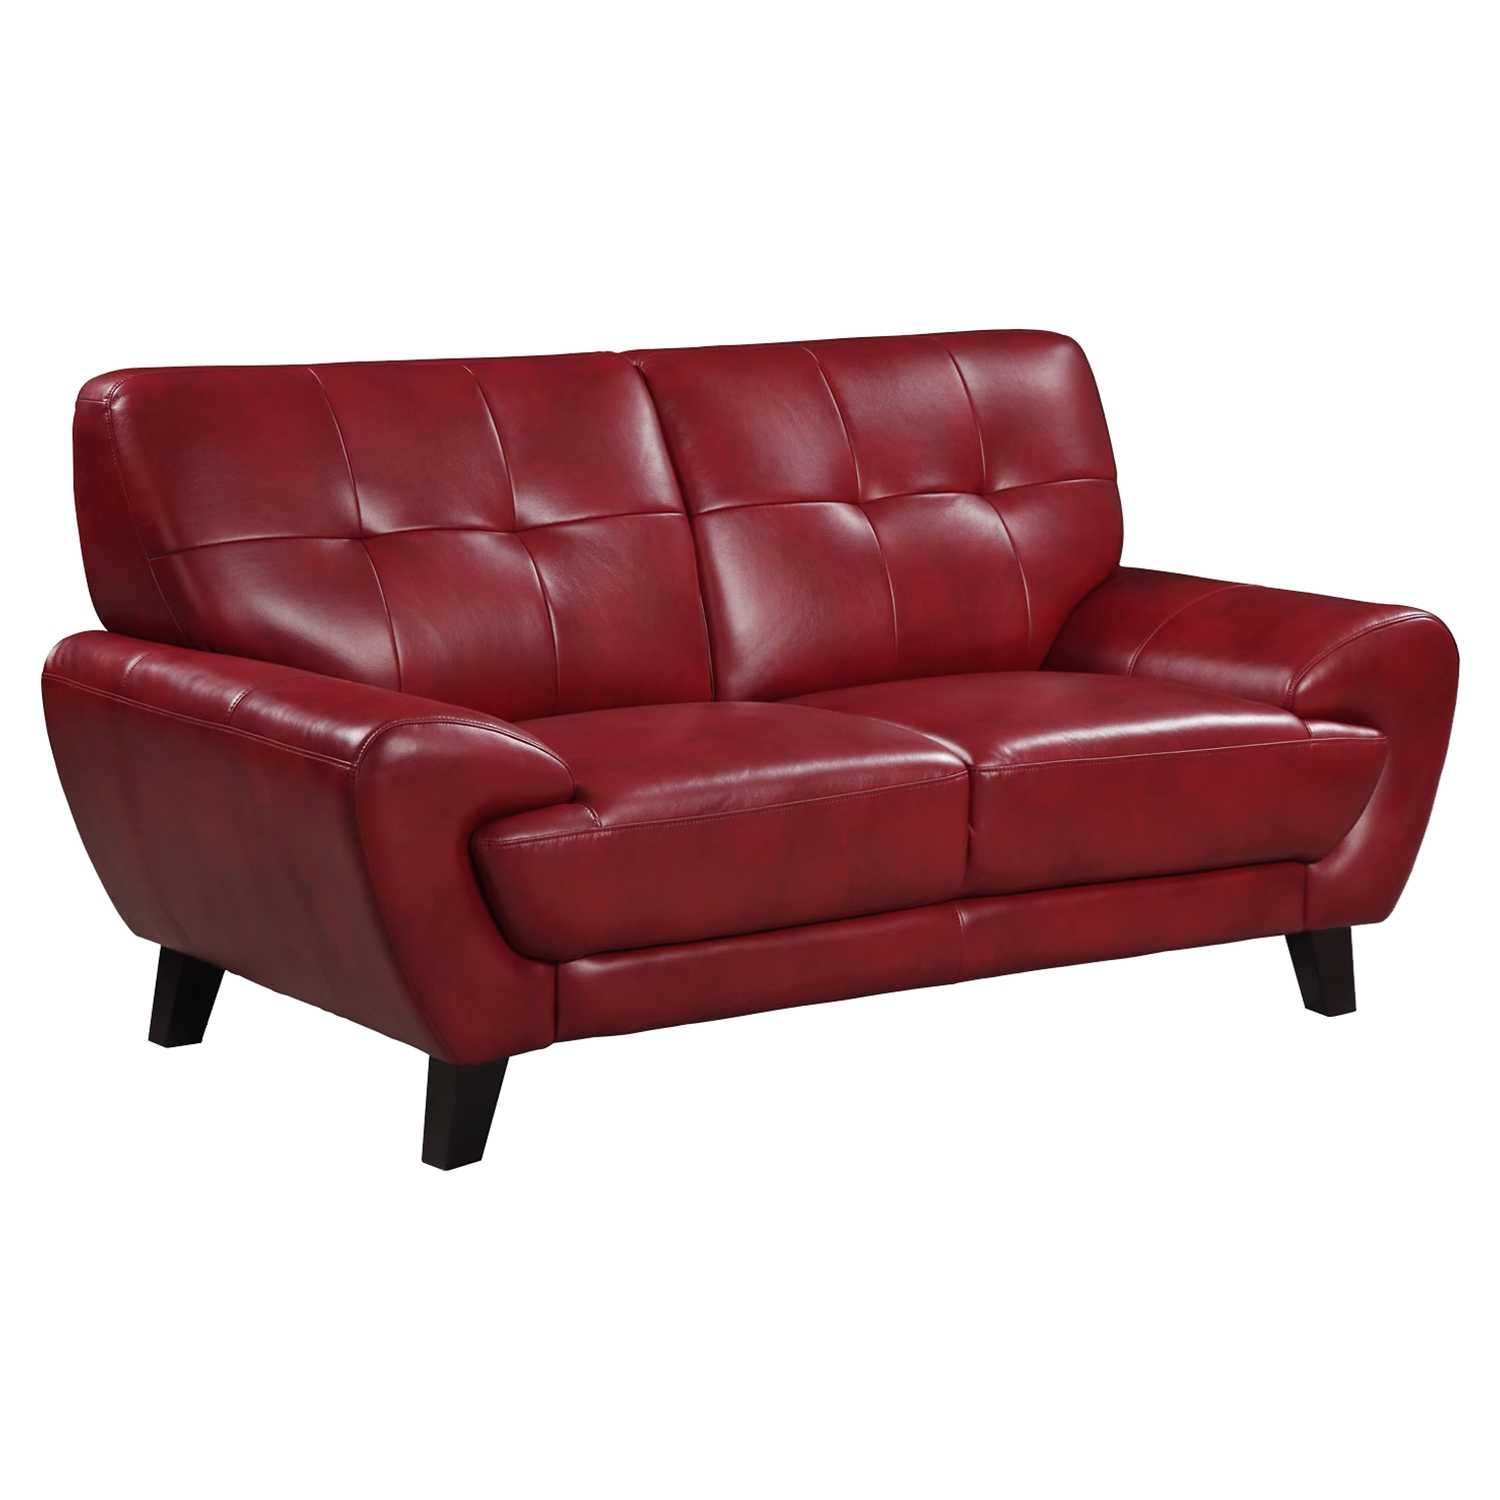 Juliana Leather Loveseat, Blanche Red